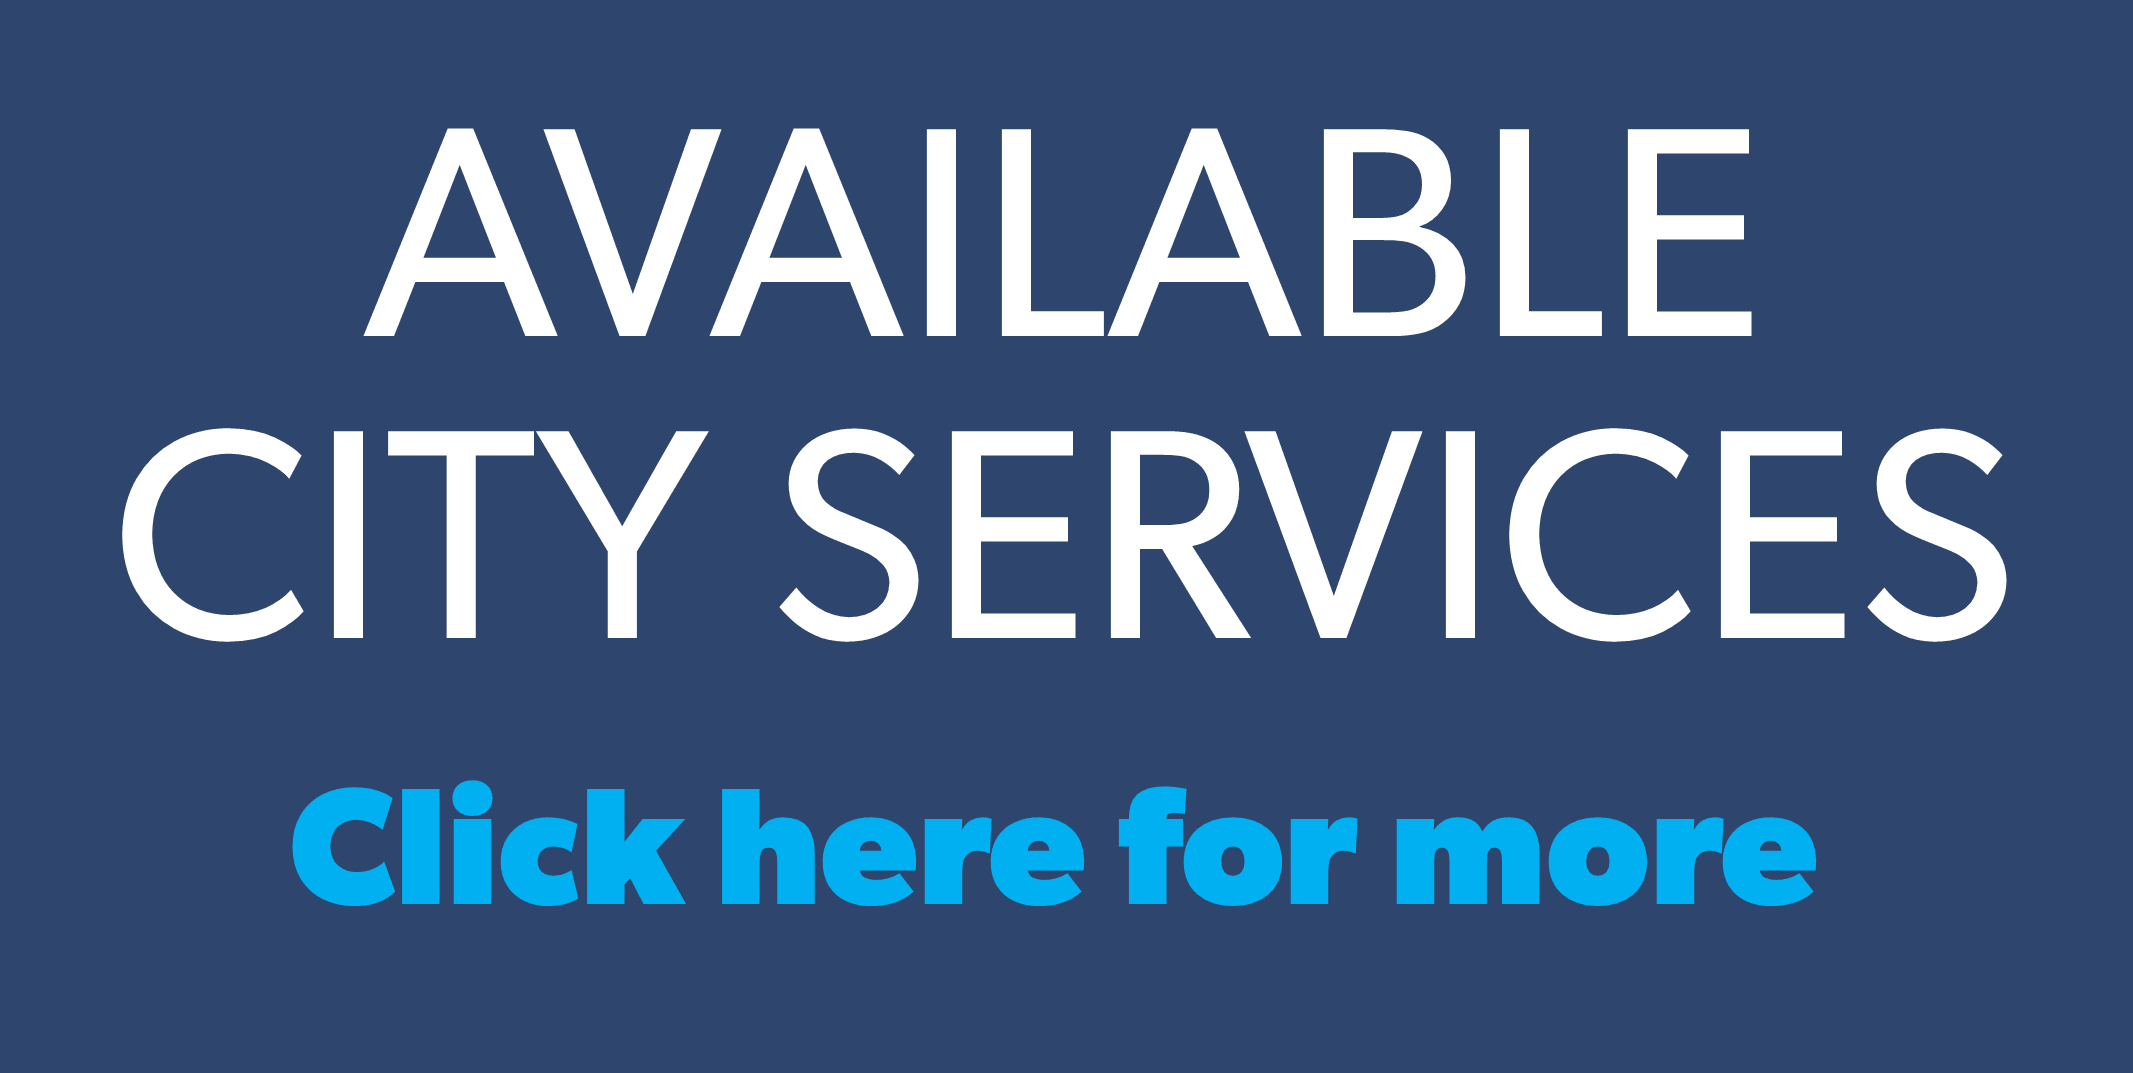 Available city services